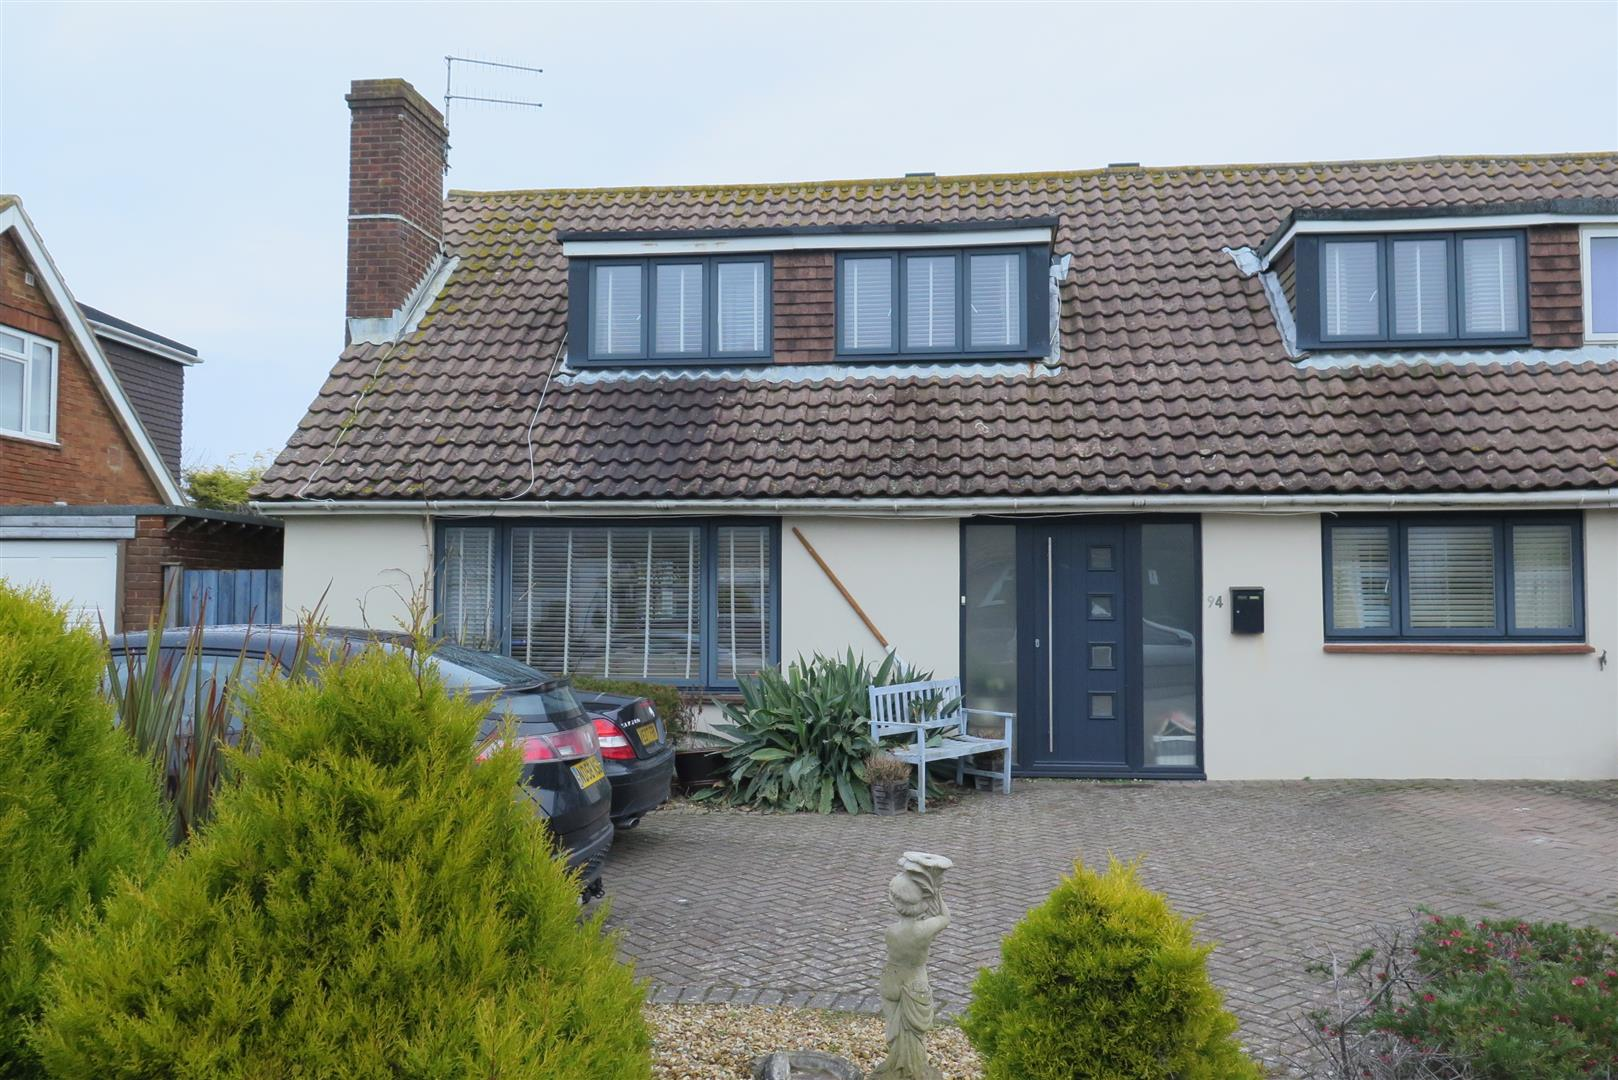 5 Bedrooms Chalet House for sale in Beach Green, Shoreham-By-Sea